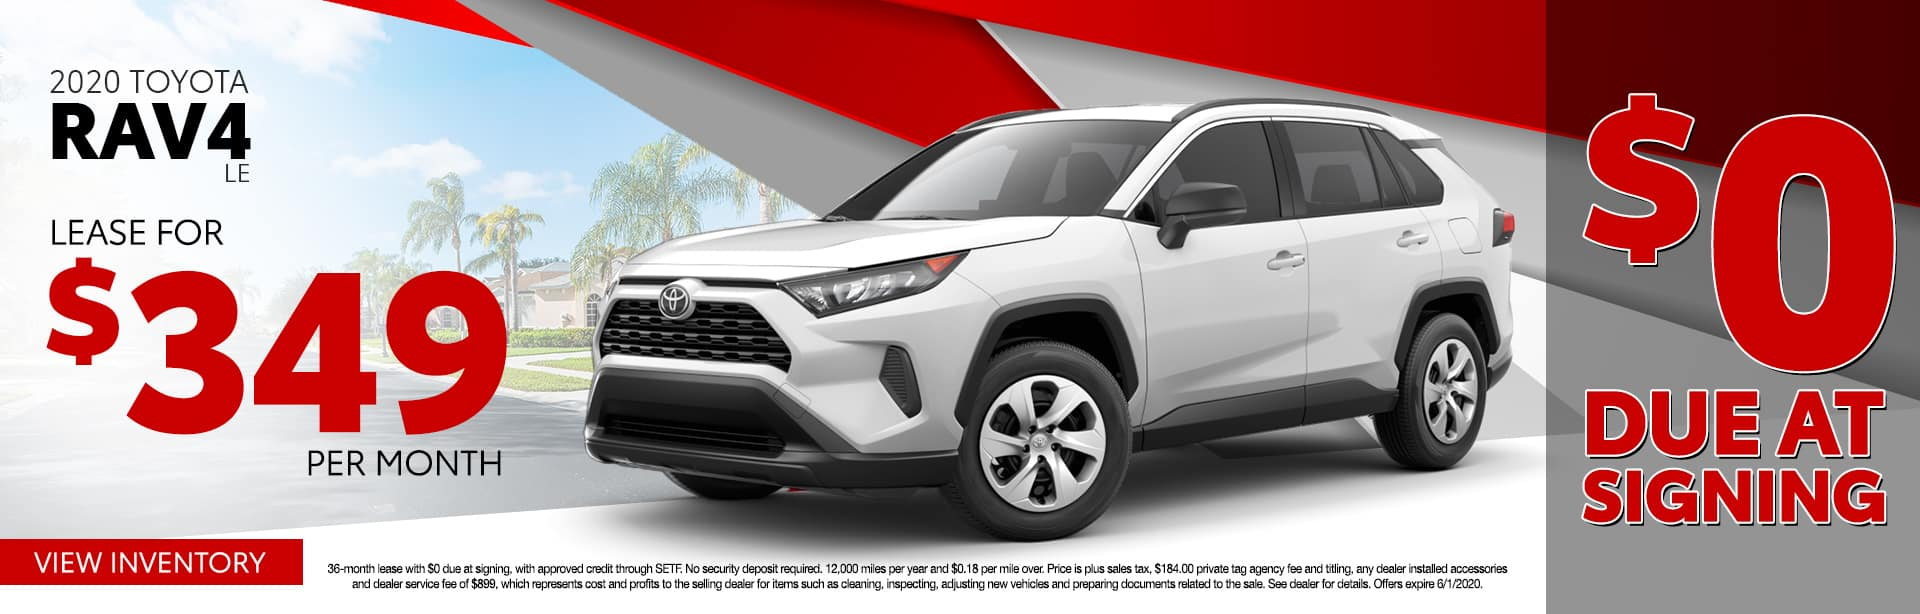 2020 Toyota RAV4 LE | Lease For $349 Per Month $0 Due At Signing